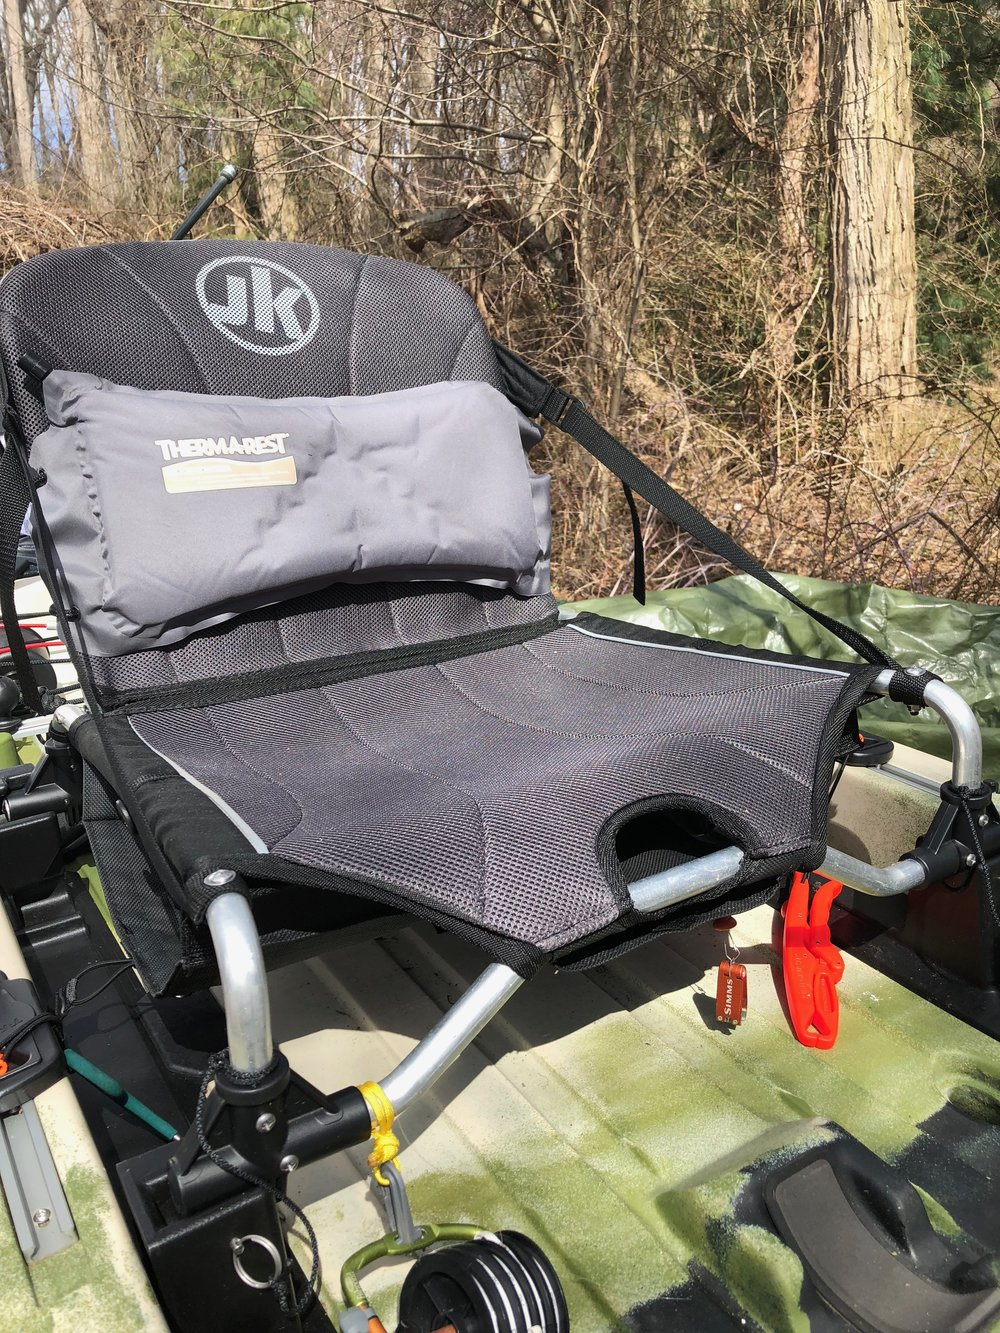 The seat on the Jackson Mayfly is extremely comfortable, height adjustable and has plenty of storage built into it.